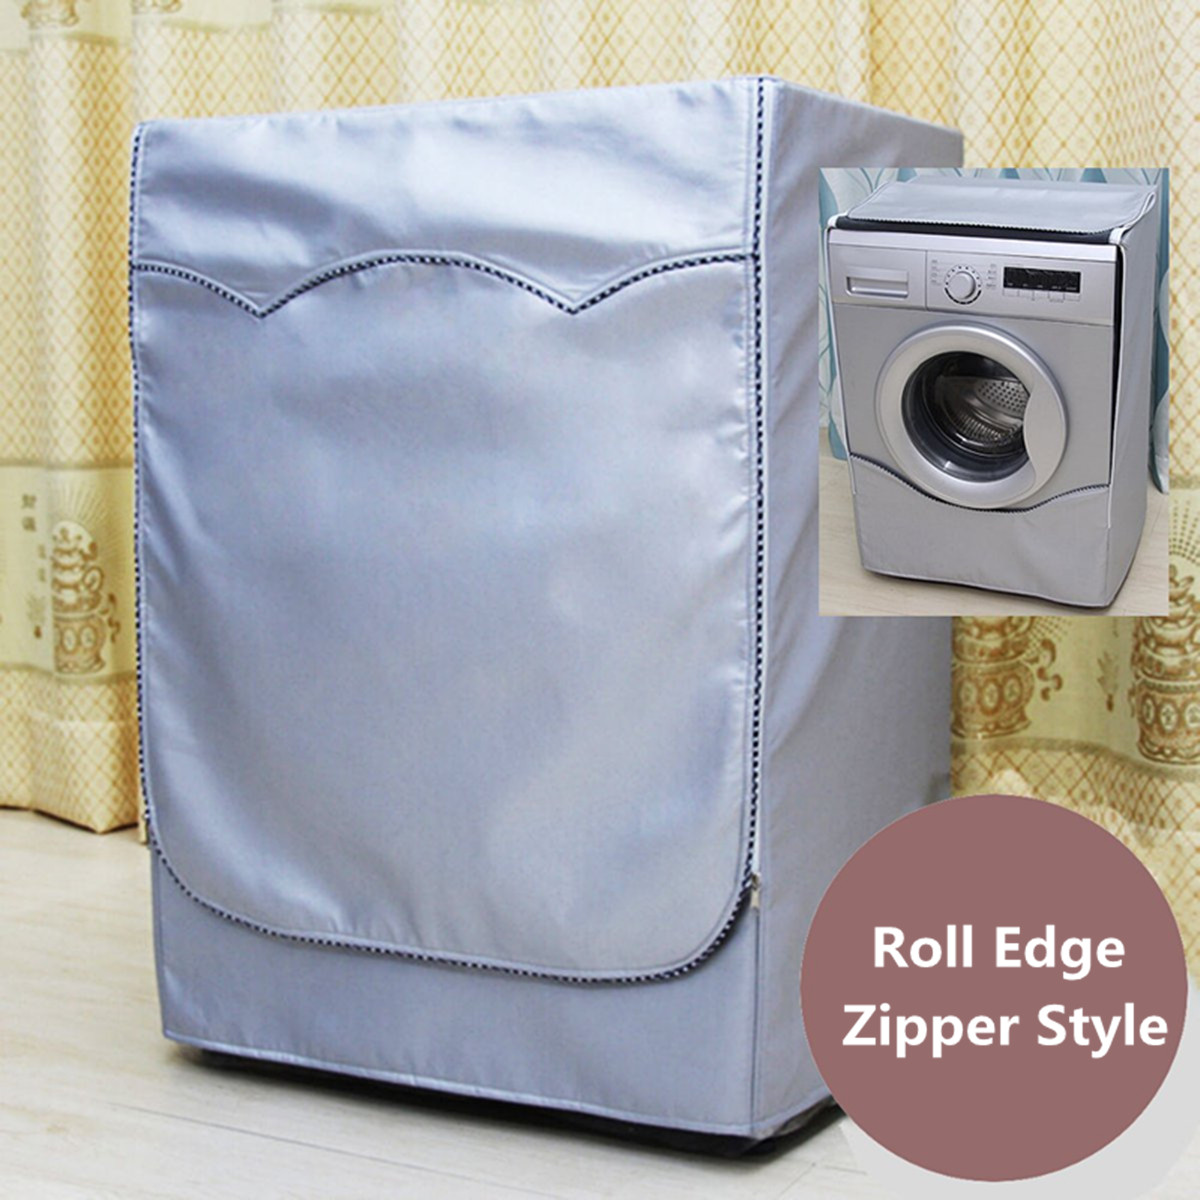 Fully Automatic Roller Washer Sunscreen Washing Machine Waterproof Cover Dryer Polyester Silver Dustproof Washing Machine Cover